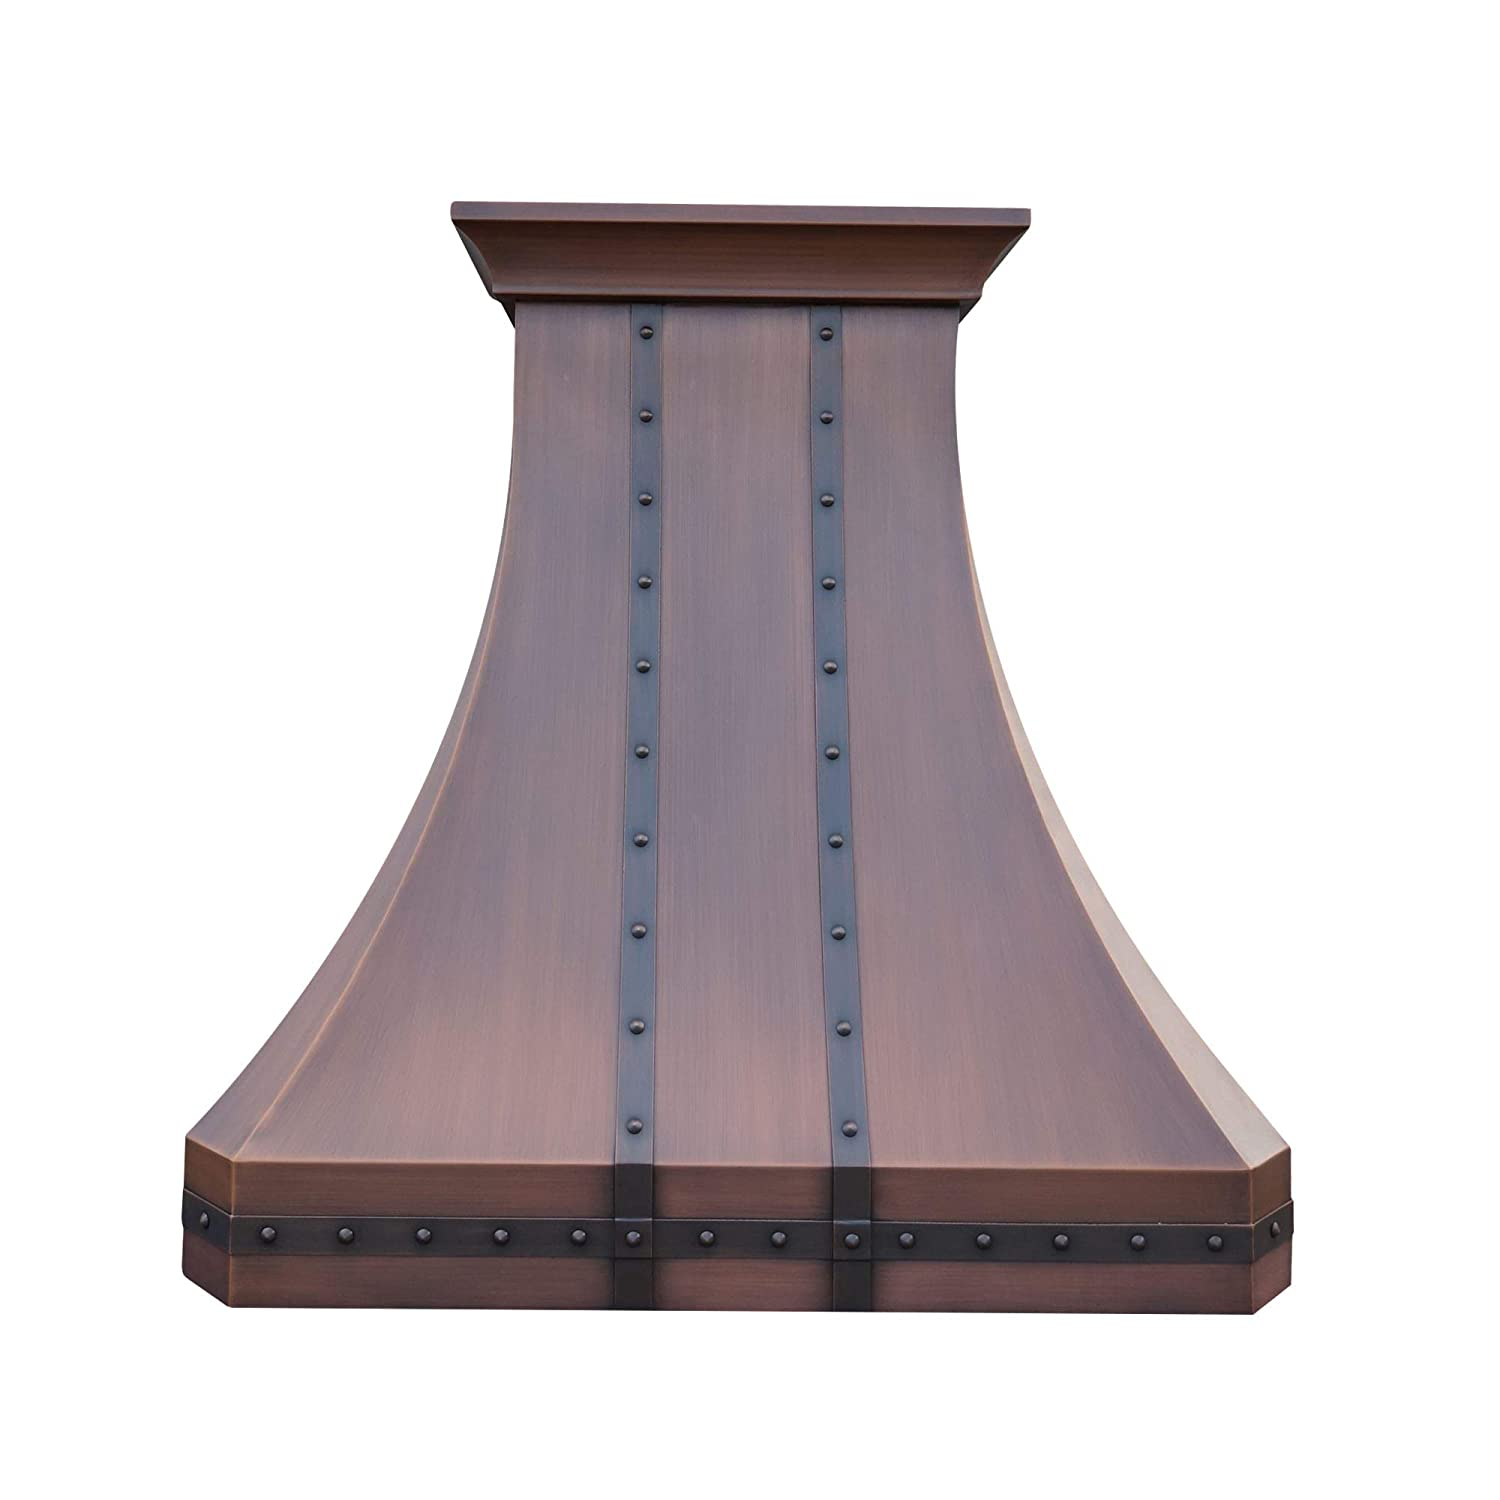 Traditional Copper Kitchen Oven Hood with Professional Range Hood Insert Antique Copper Classic Design Decorative Crown Straps and Rivets Handmade by Sinda, H30STRCW4848